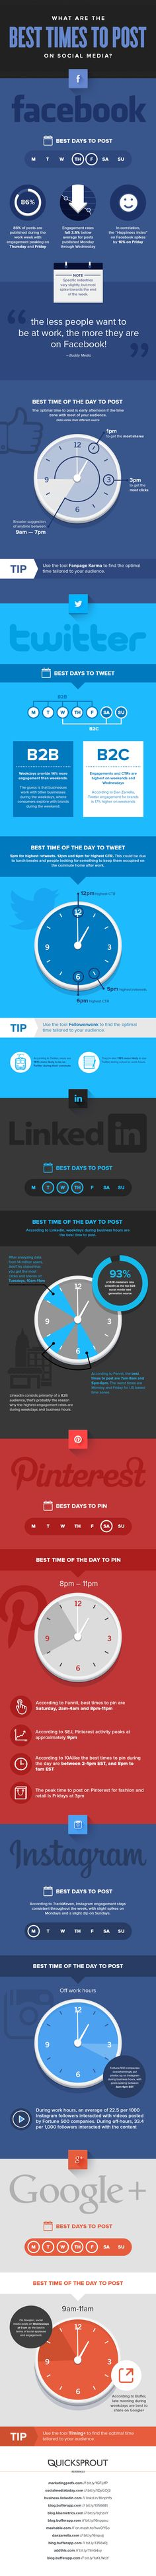 Have you wondered about the times of day your content is most likely to be shared on social media networks? Do you know during which days of the week your...